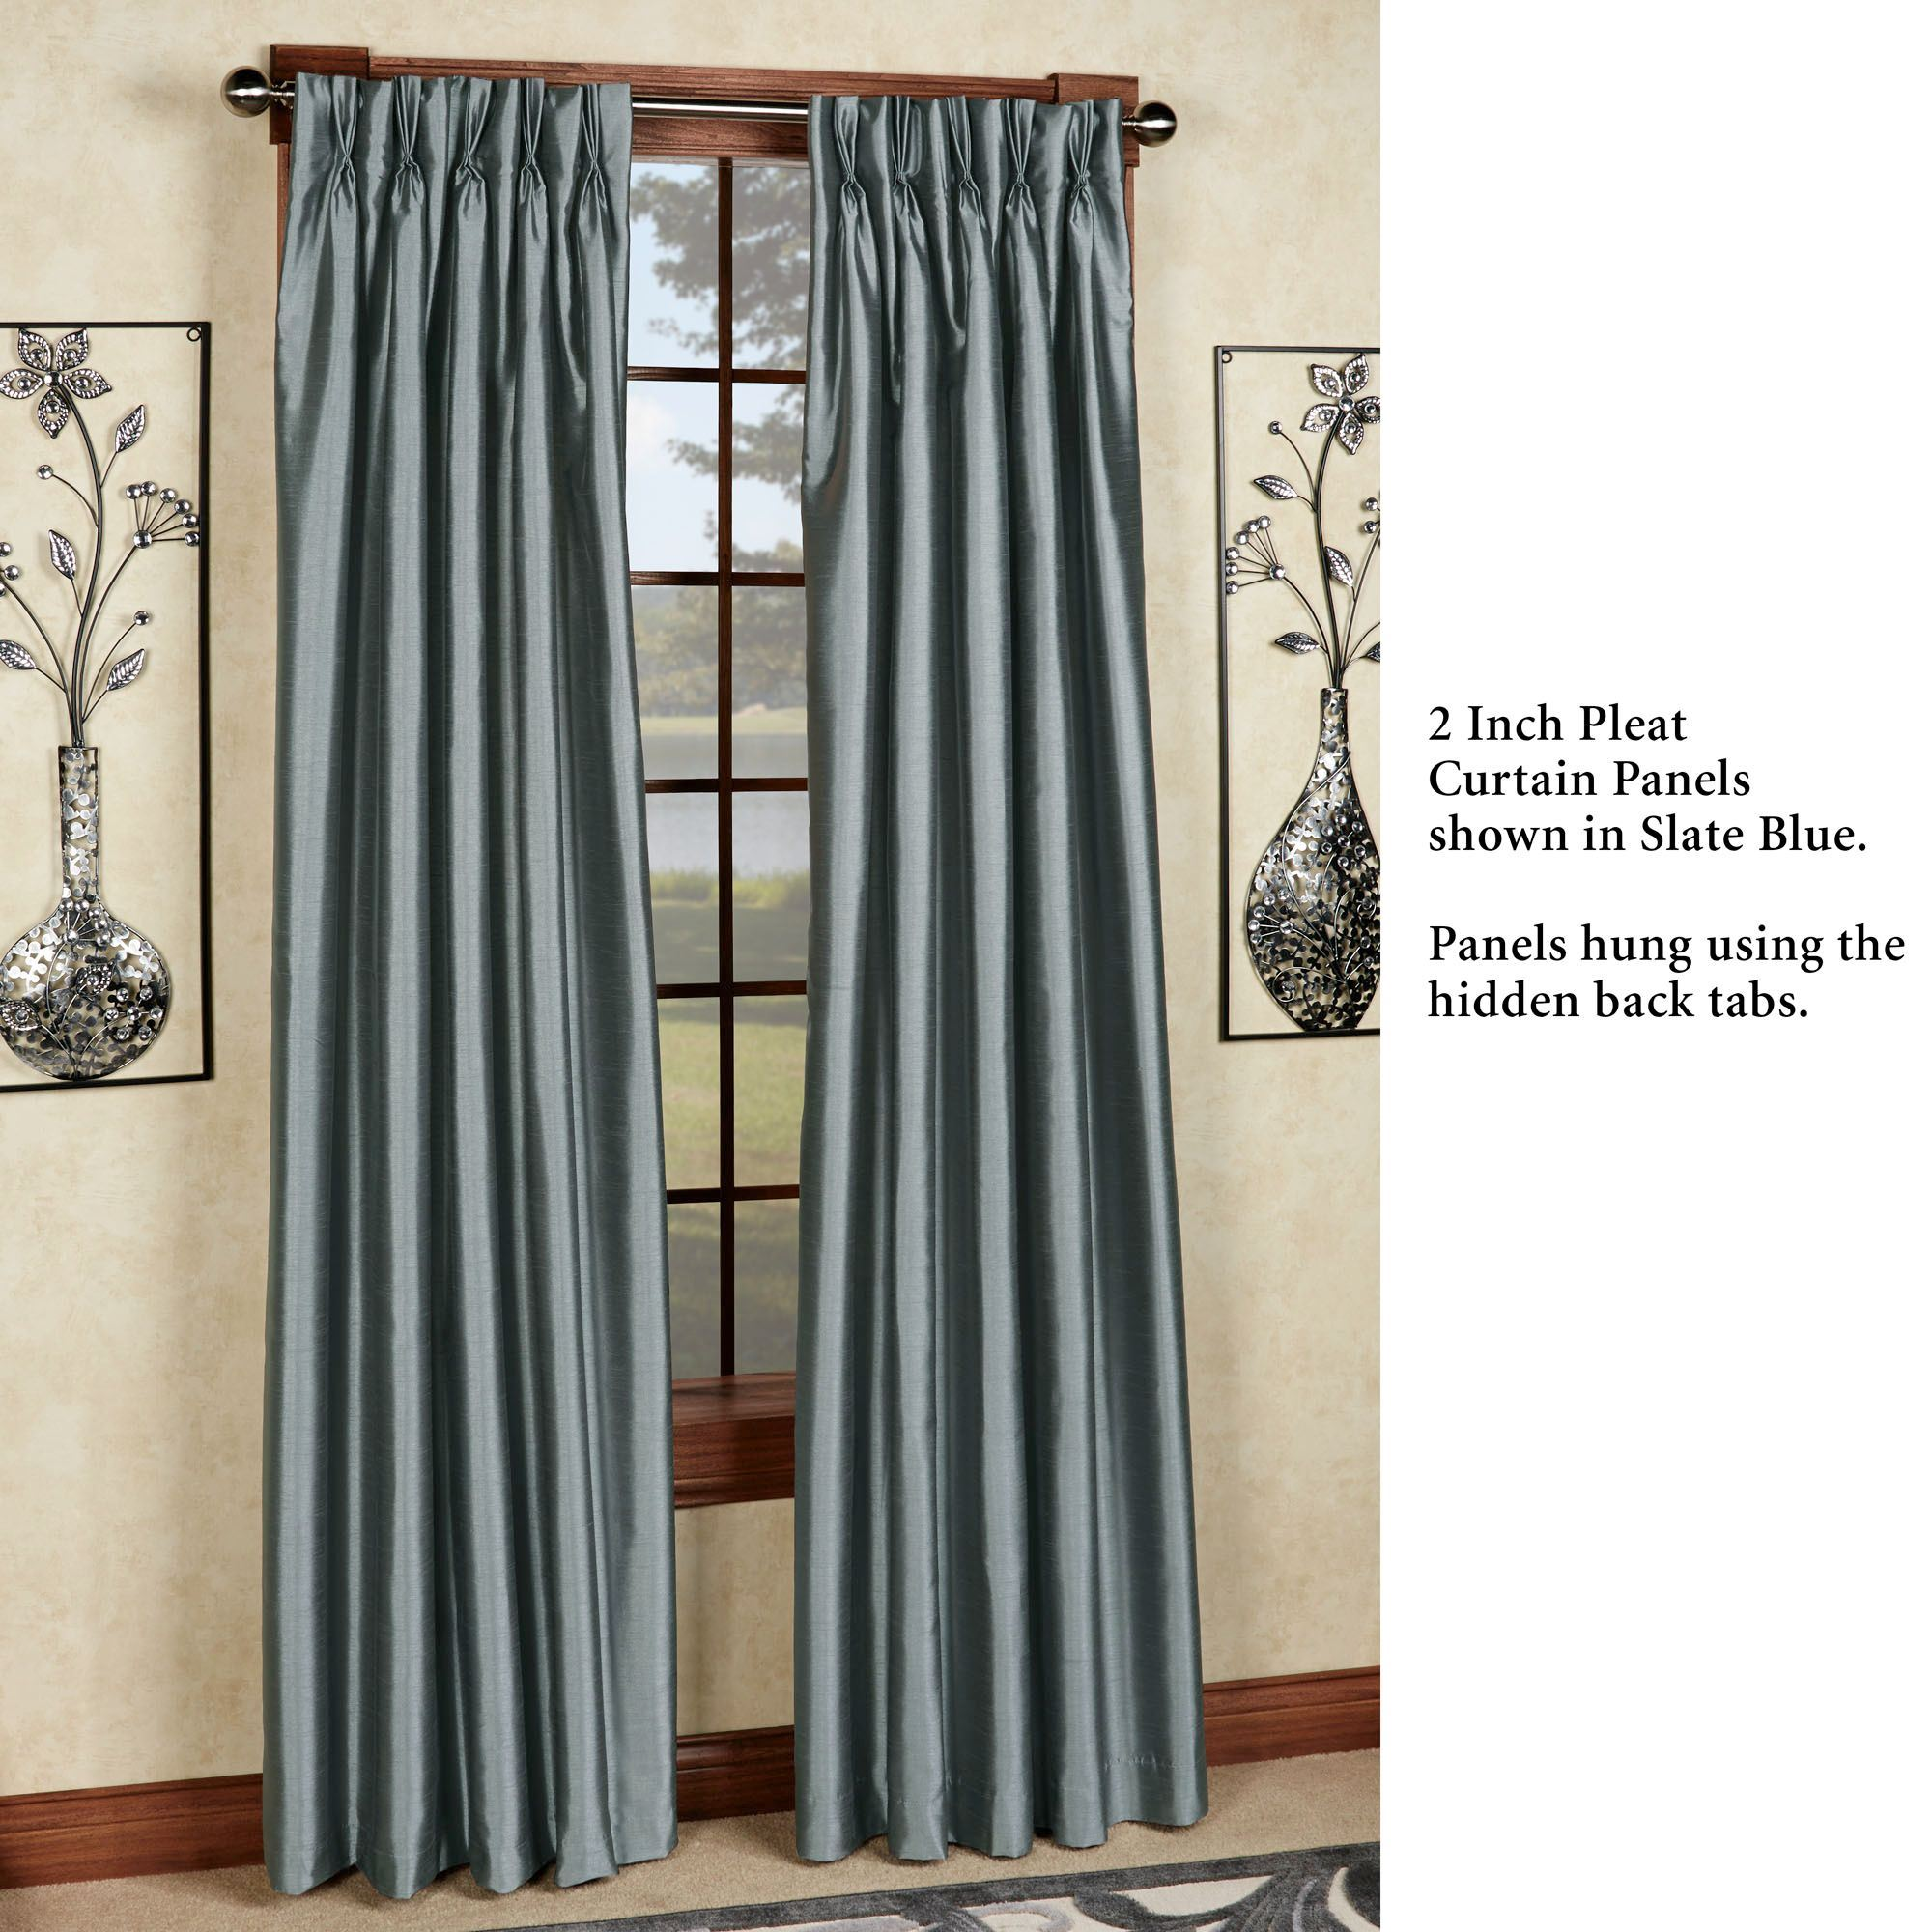 parties discount weddings of ideas drapes room wall green buy bedroom designs india for agreeable chenille living forest windows curtains astounding online livingroom and